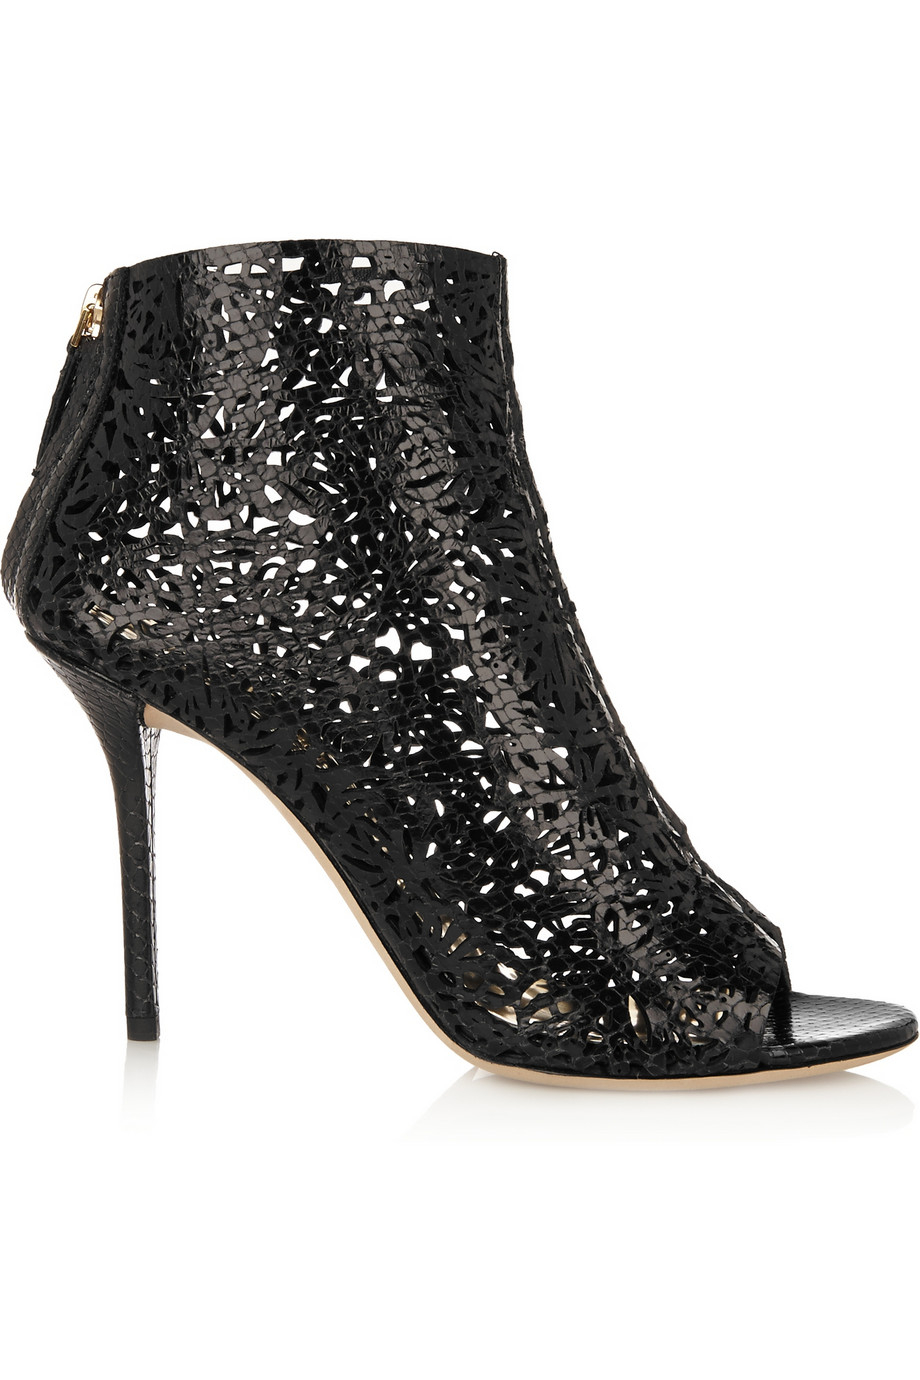 Emilio Pucci Cutout Snake-Effect Leather Ankle Boots in Gold (Metallic)